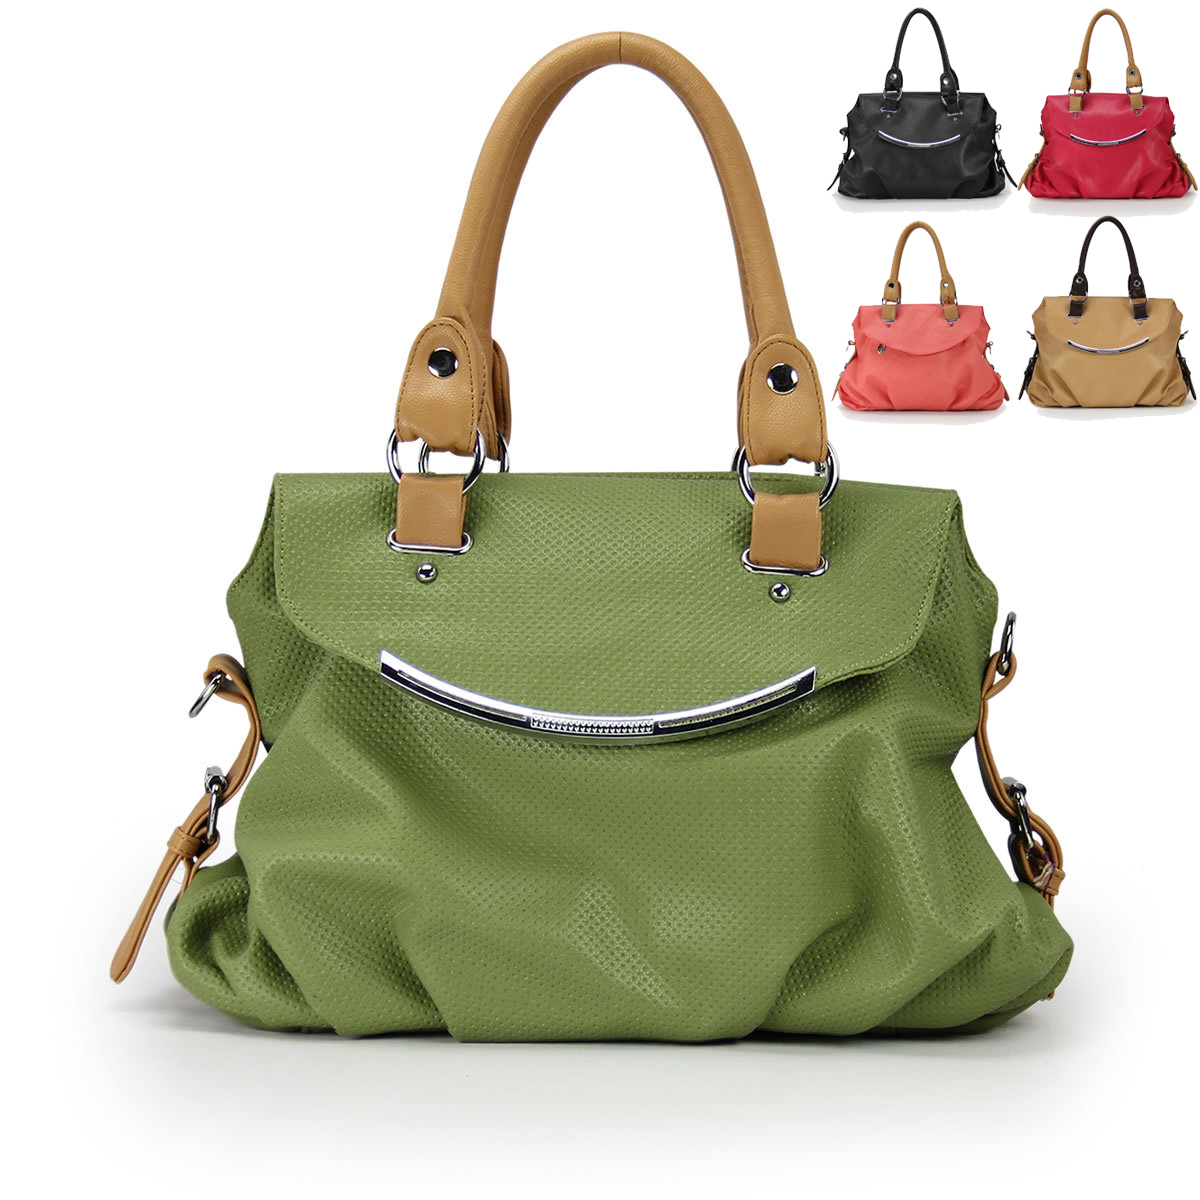 2013 female big bags women's bags portable one shoulder cross-body women's handbag dual